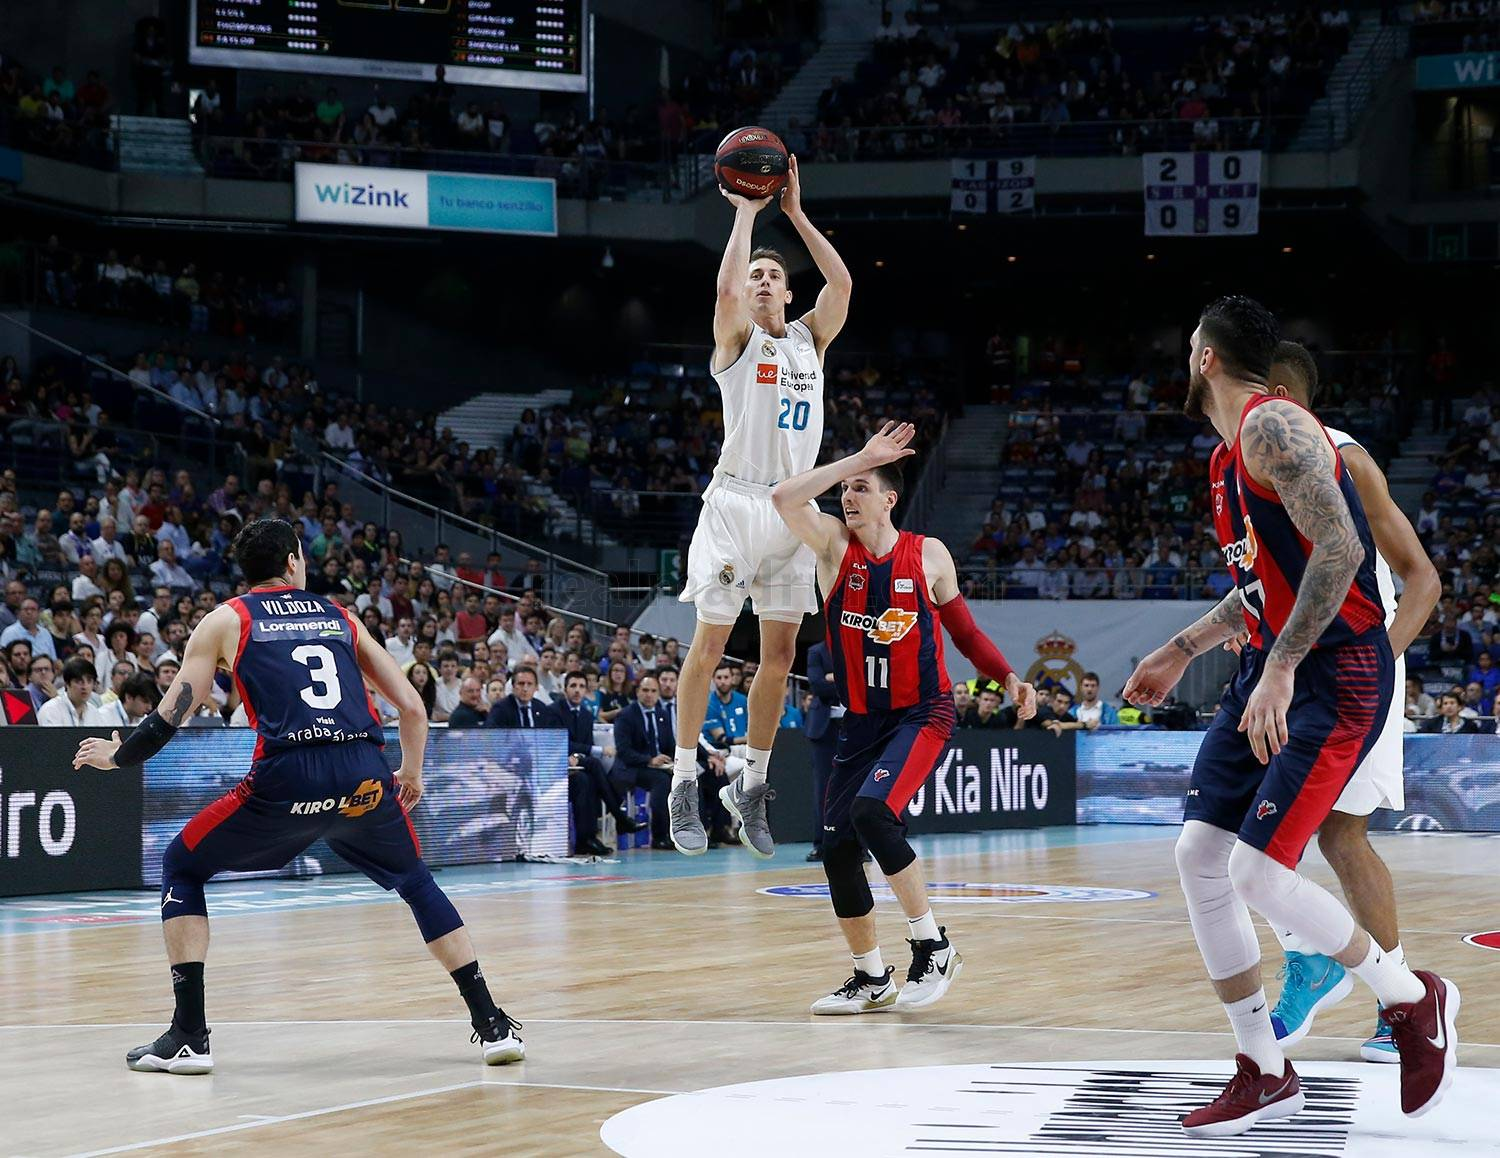 Real Madrid - Real Madrid - Kirolbet Baskonia - 15-06-2018